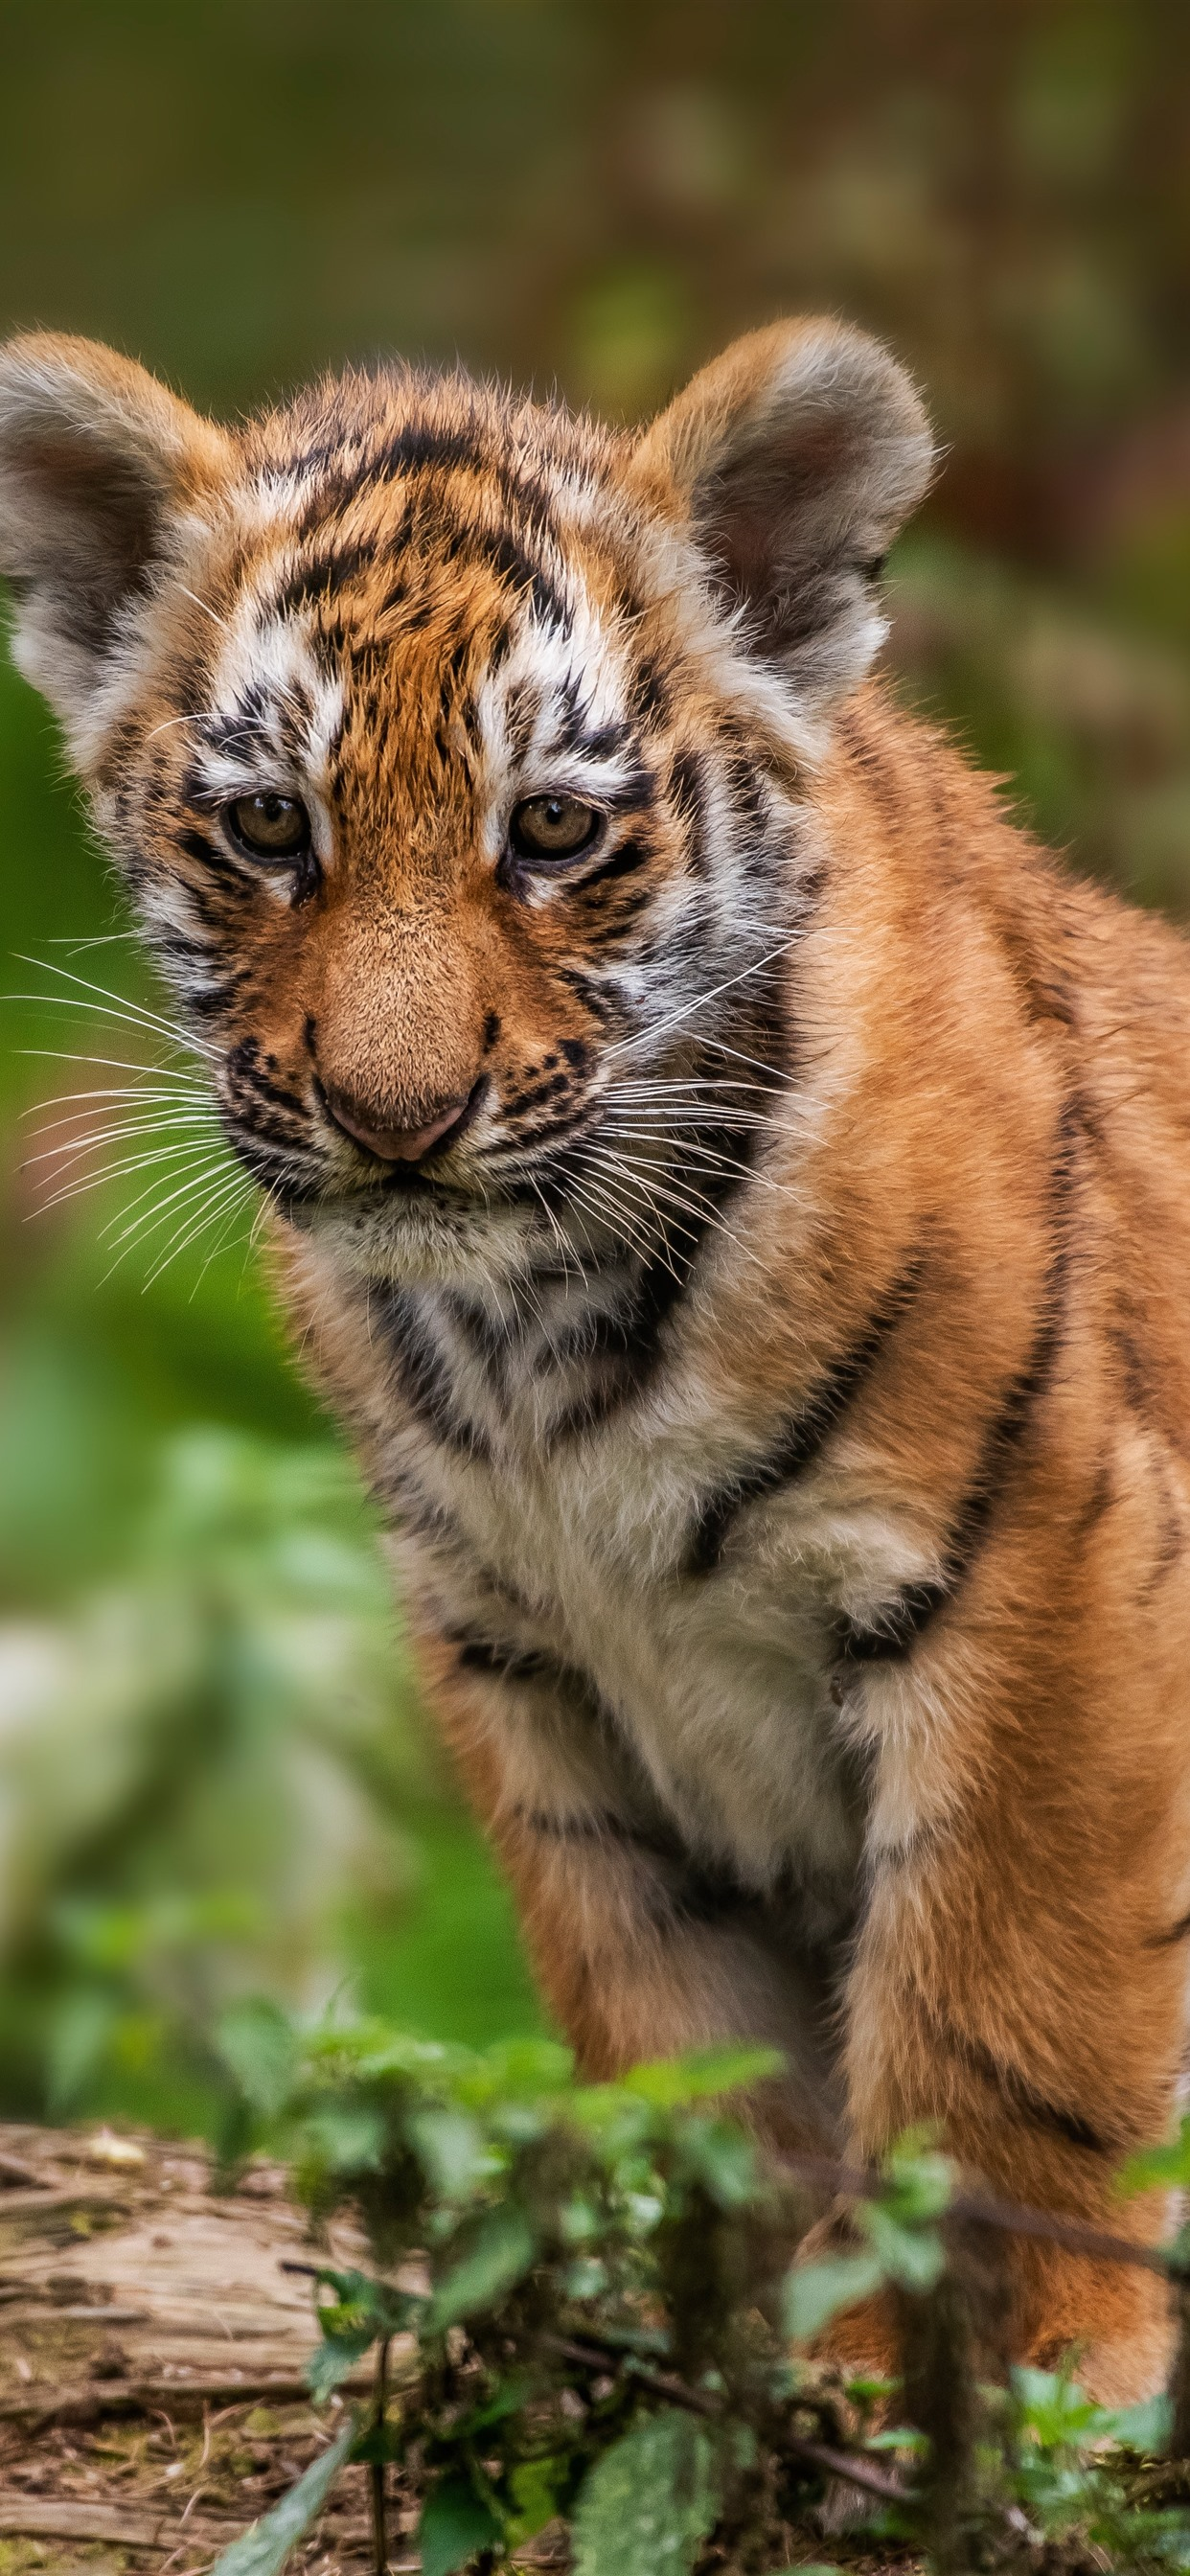 Tiger Cub Look Wildlife 1242x2688 Iphone 11 Pro Xs Max Wallpaper Background Picture Image